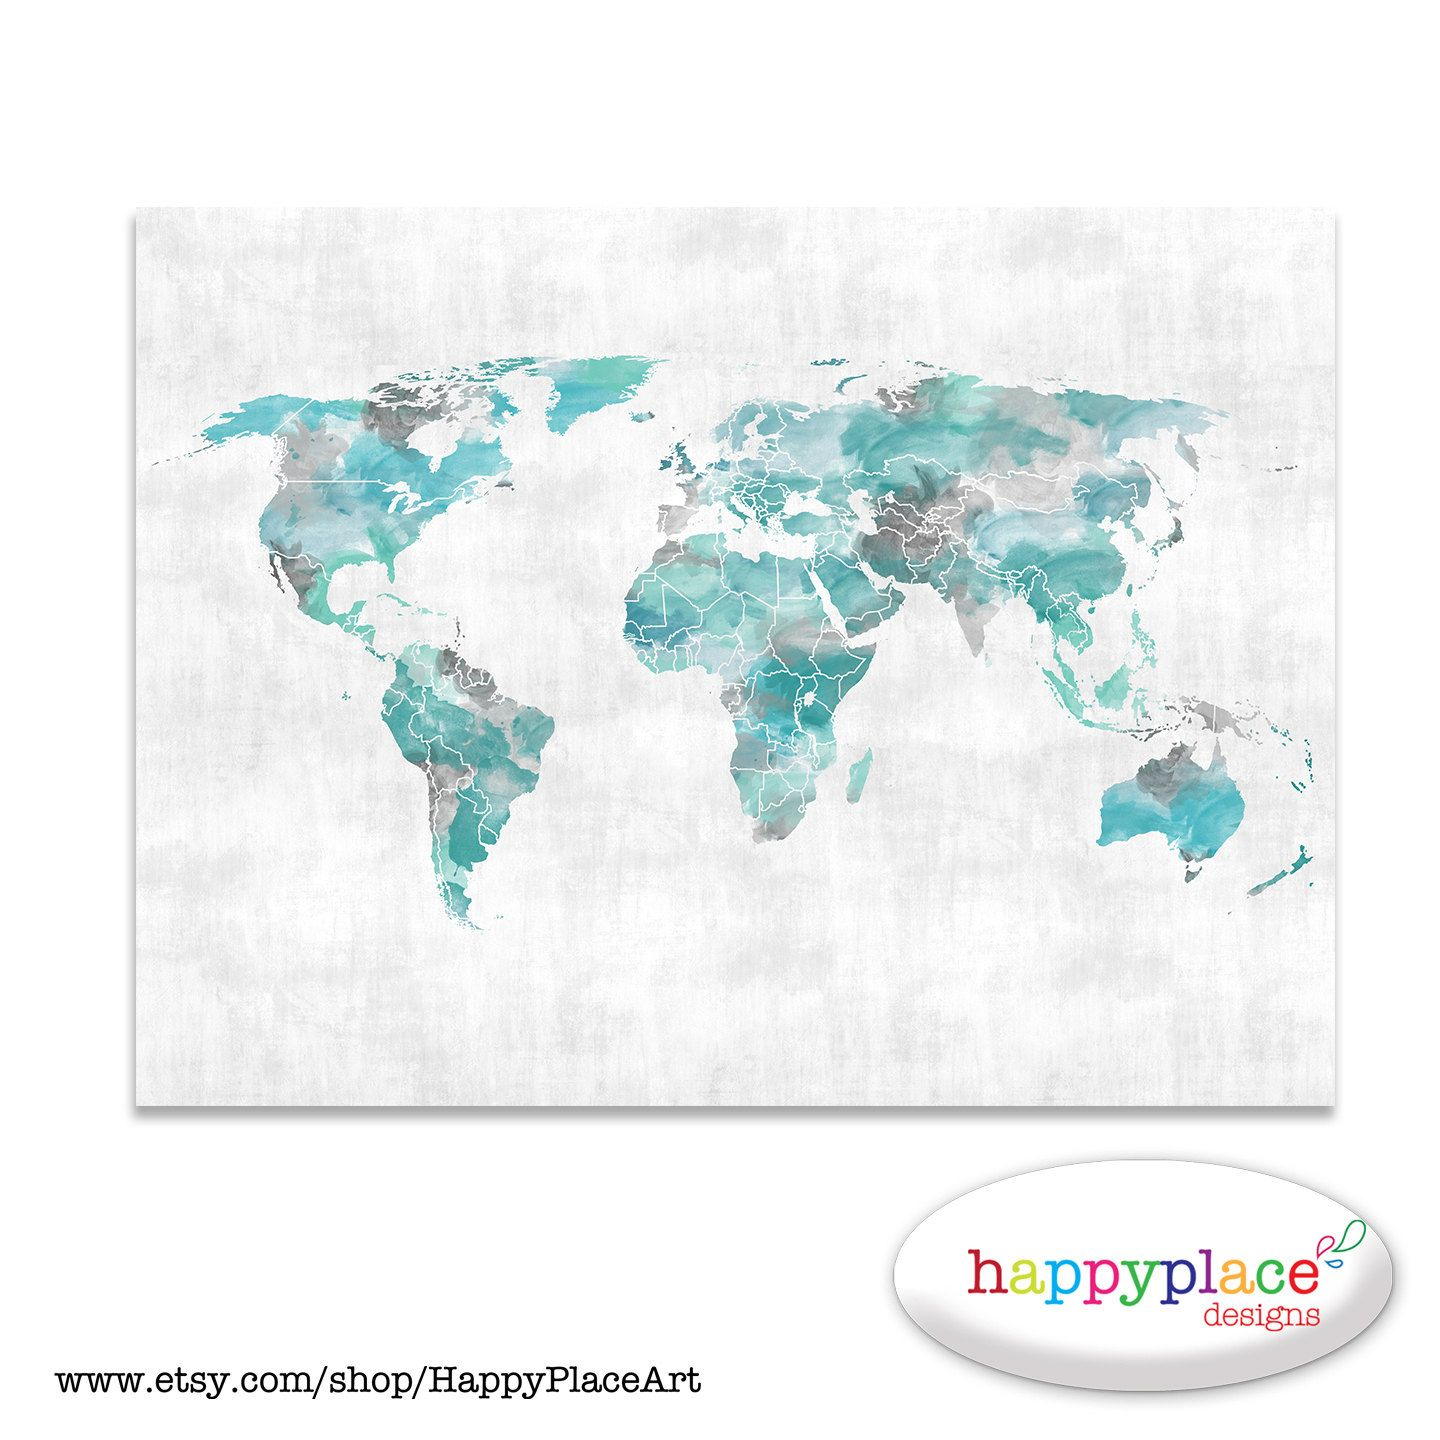 World Map Wall Art Gray Aqua Print With Personalised Text Or Quote - Grey world map poster